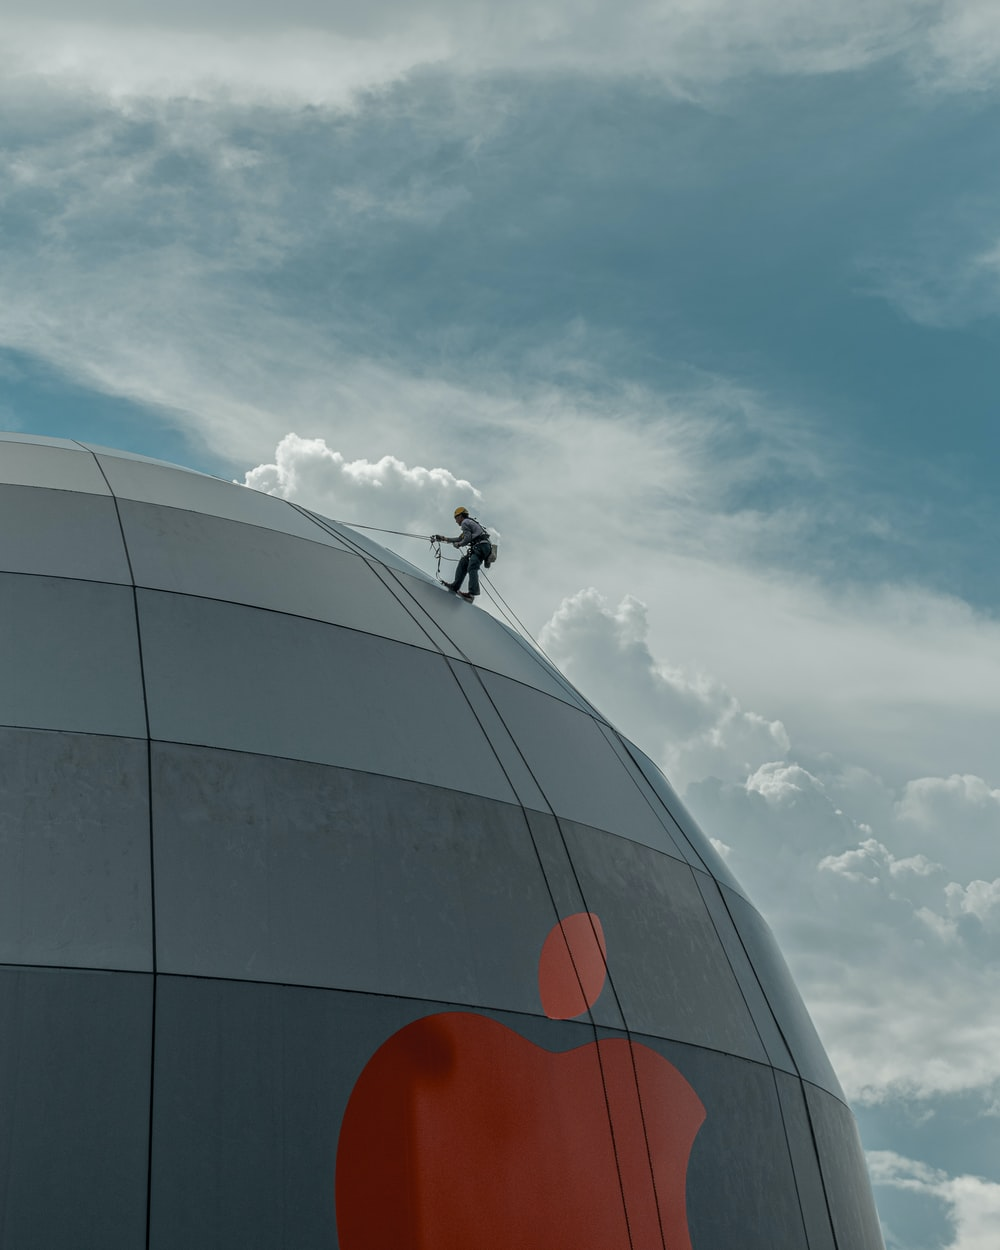 man in black jacket riding bicycle on brown round building under white clouds during daytime